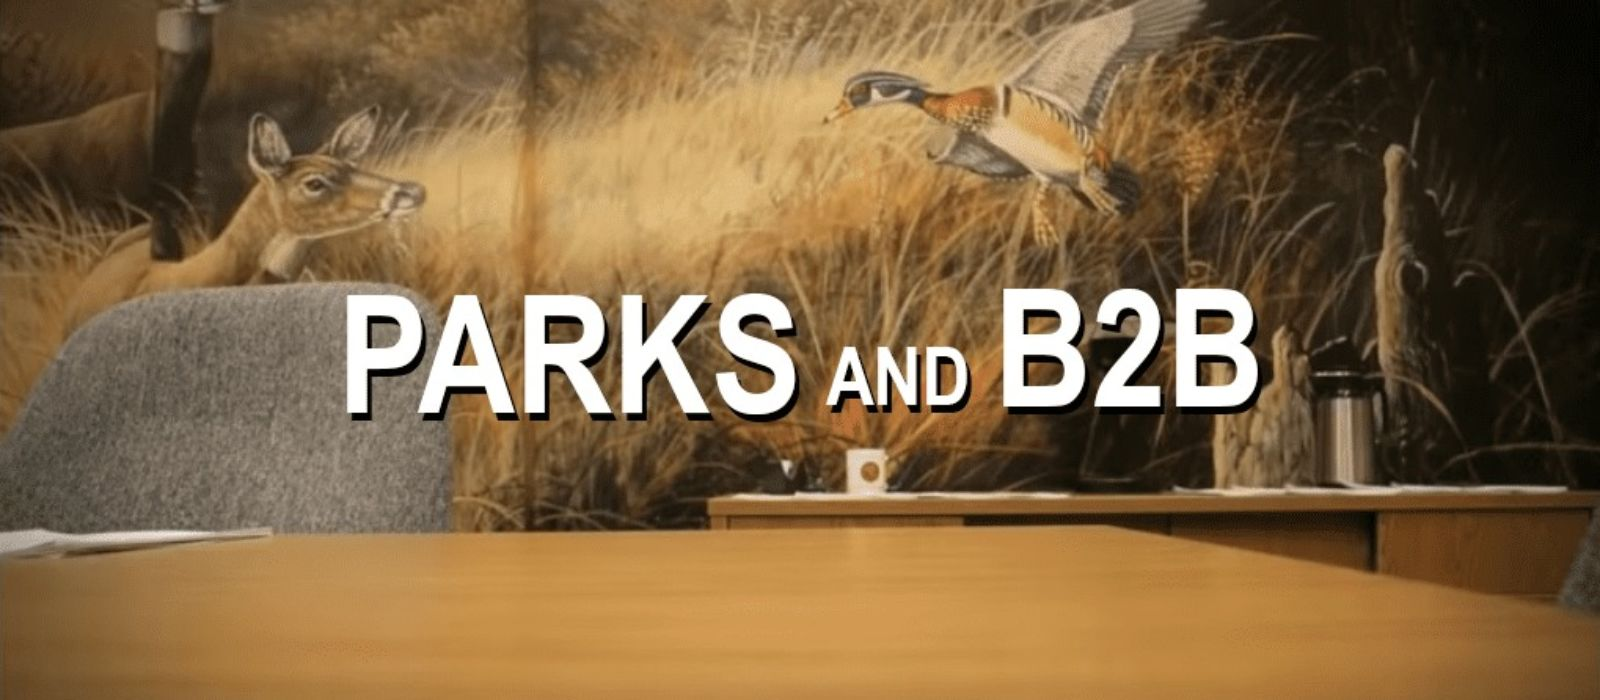 parks-and-b2b